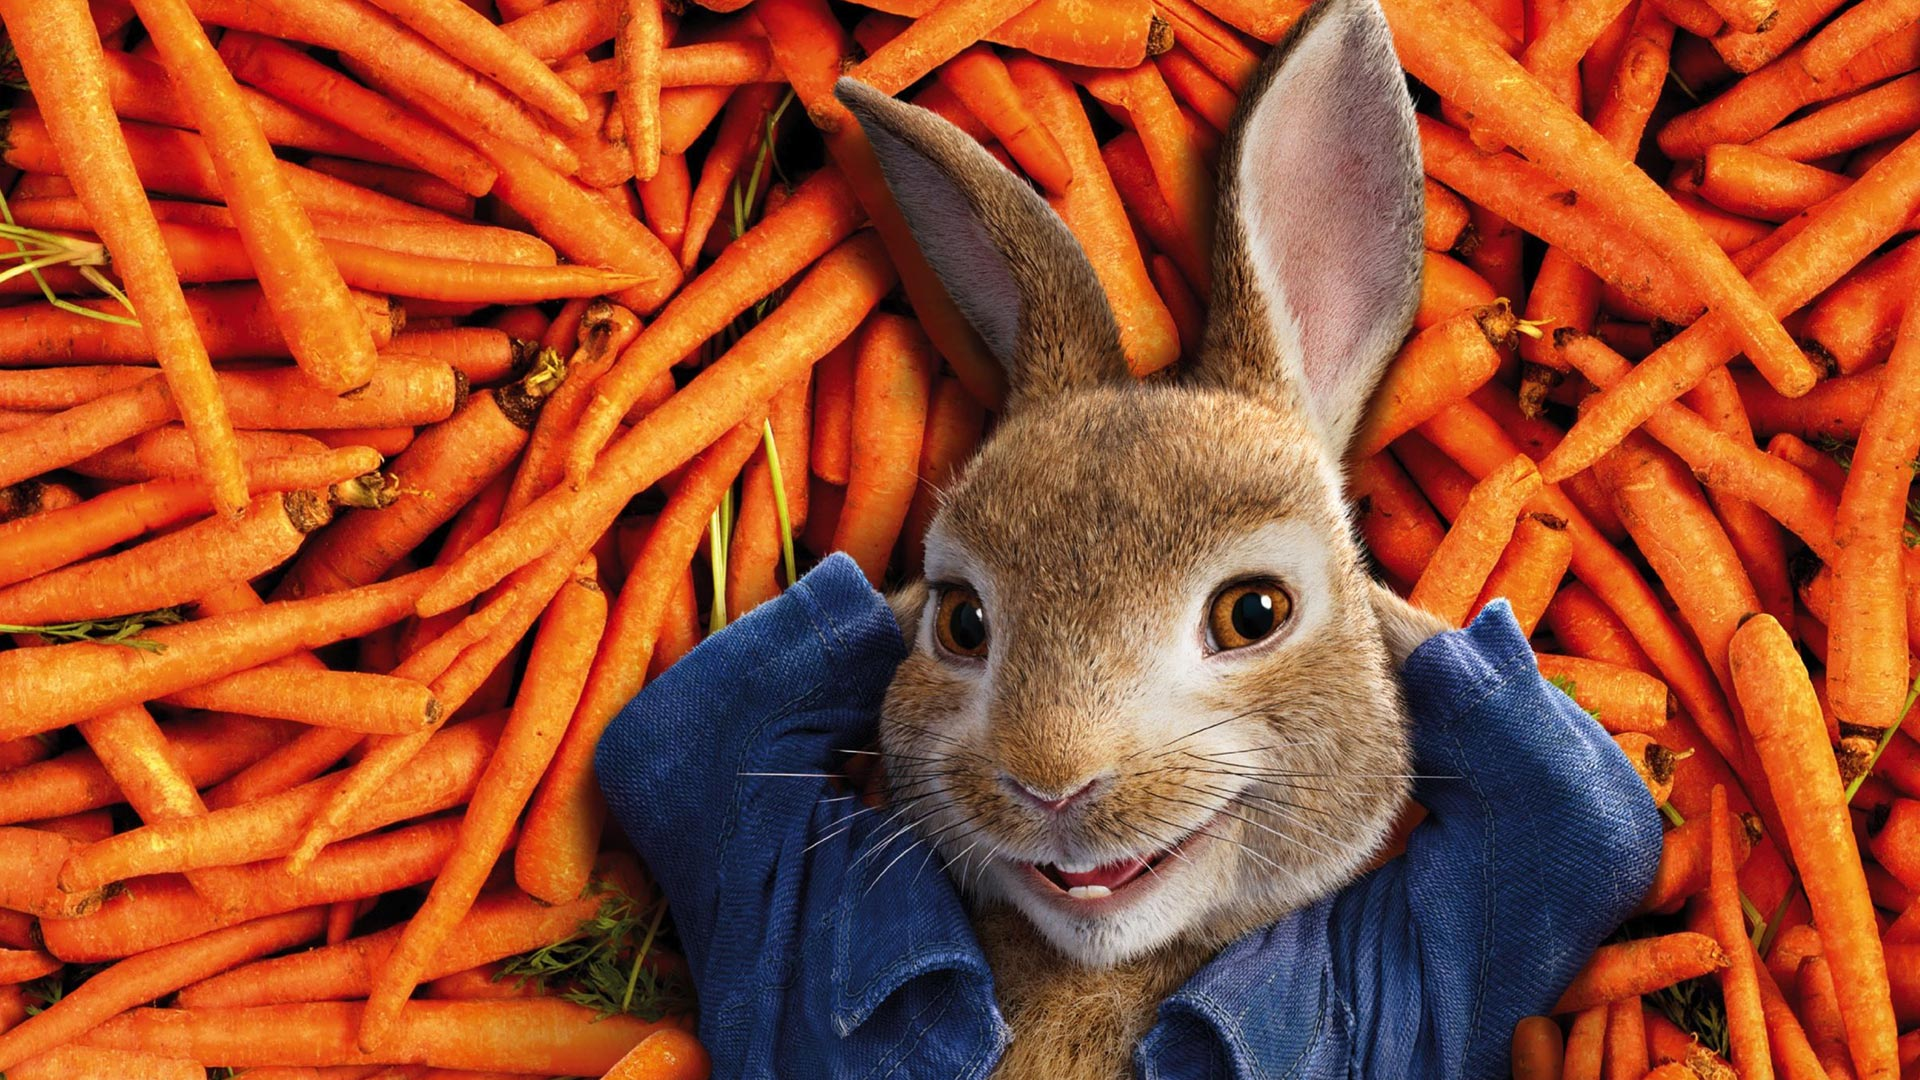 https://cinemaplanet.pt/wp-content/uploads/2018/05/newPeterRabbit.jpg